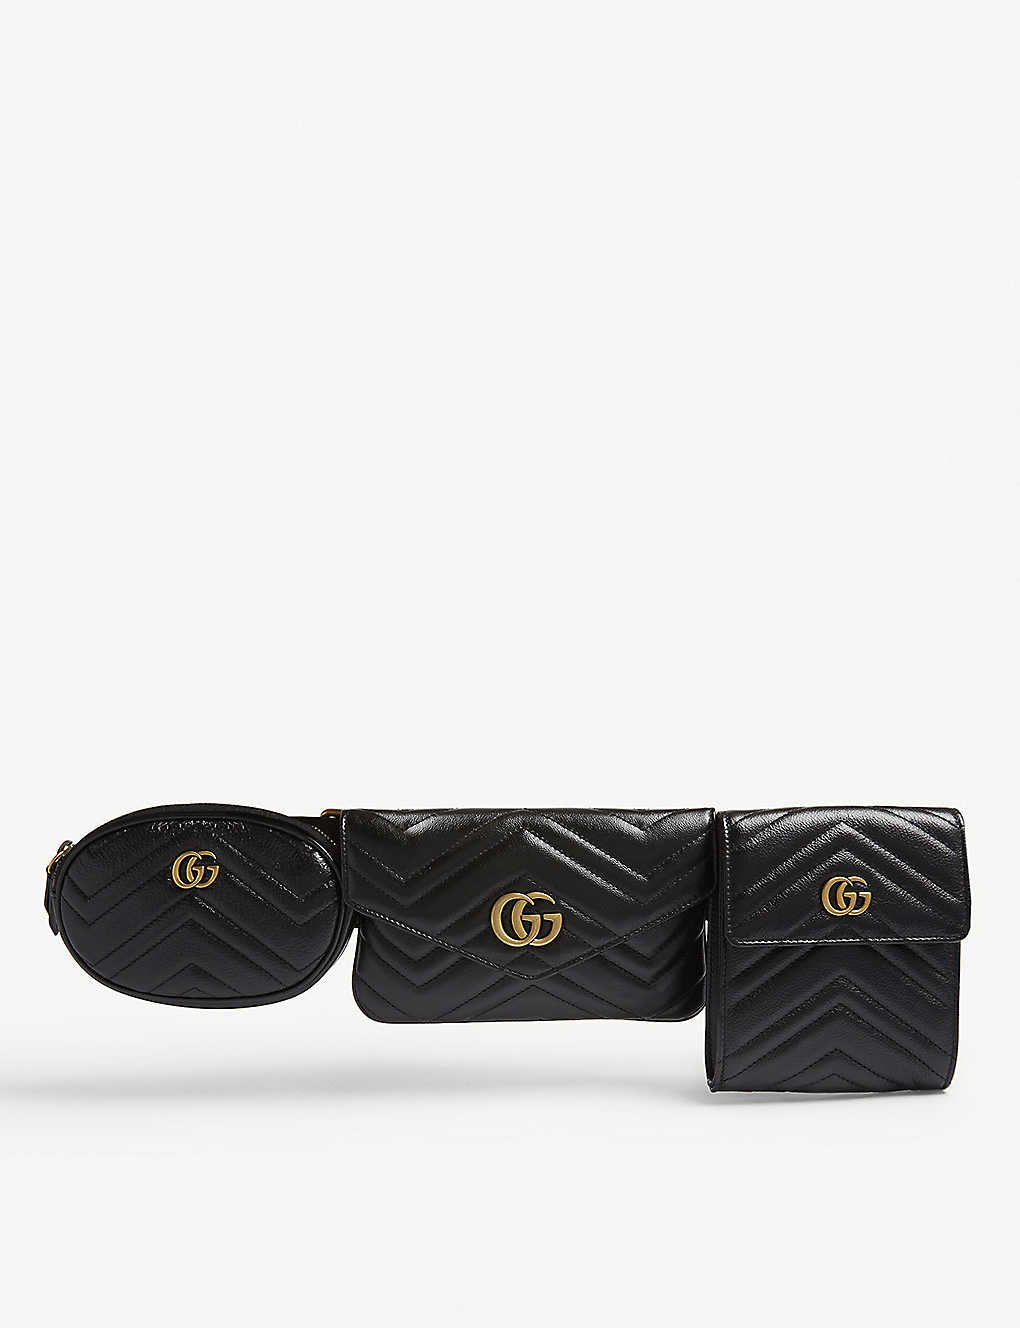 7929964cd574c2 GUCCI - GG Marmont matelassé leather multi belt bag | Selfridges.com